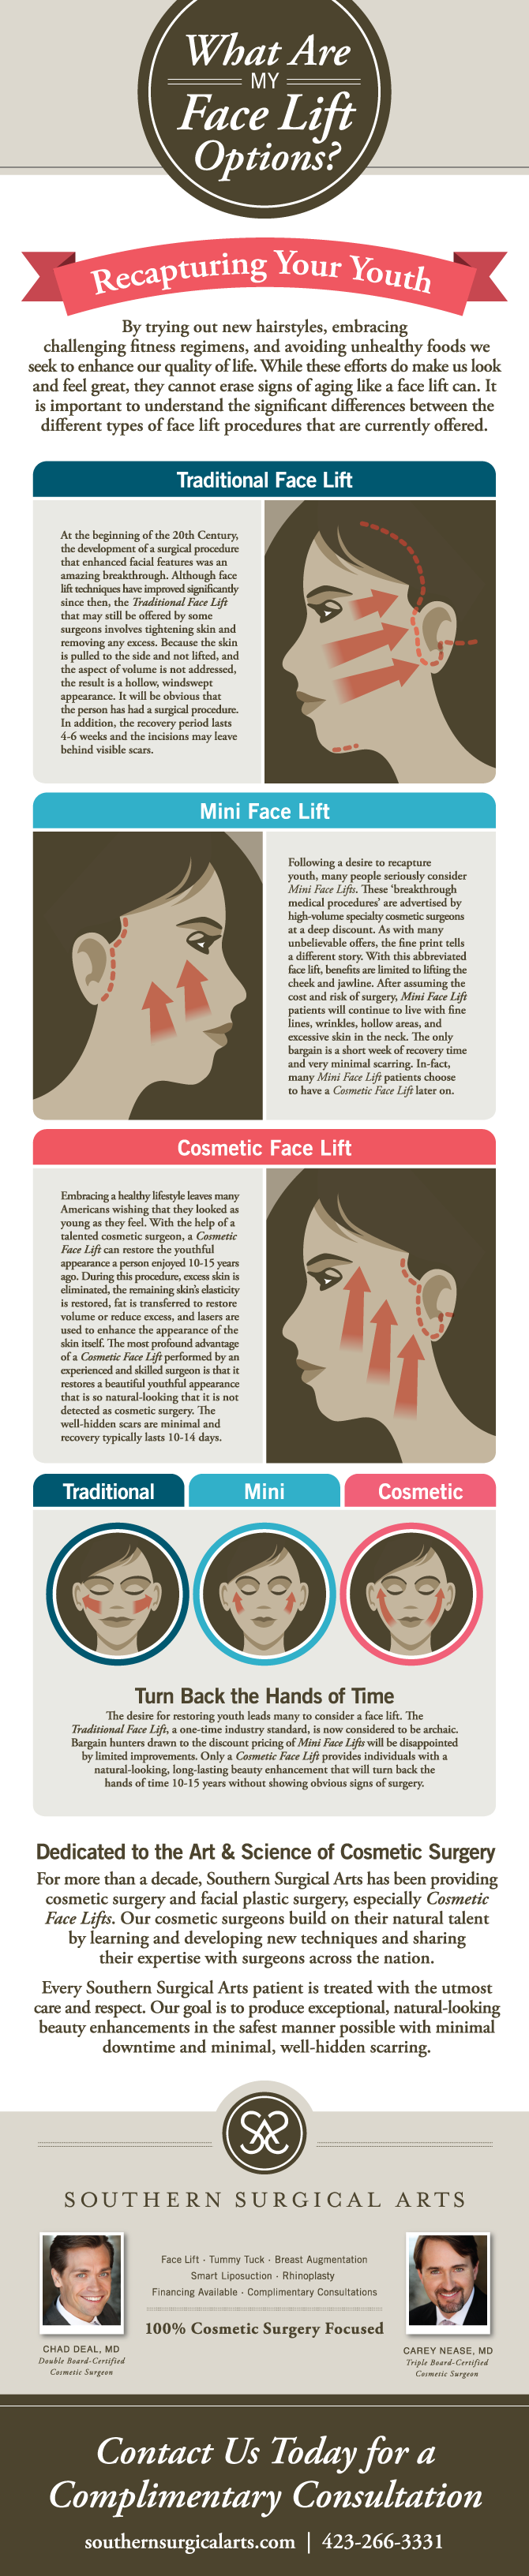 SSA-What-Are-My-Face-Lift-Options-Infographic